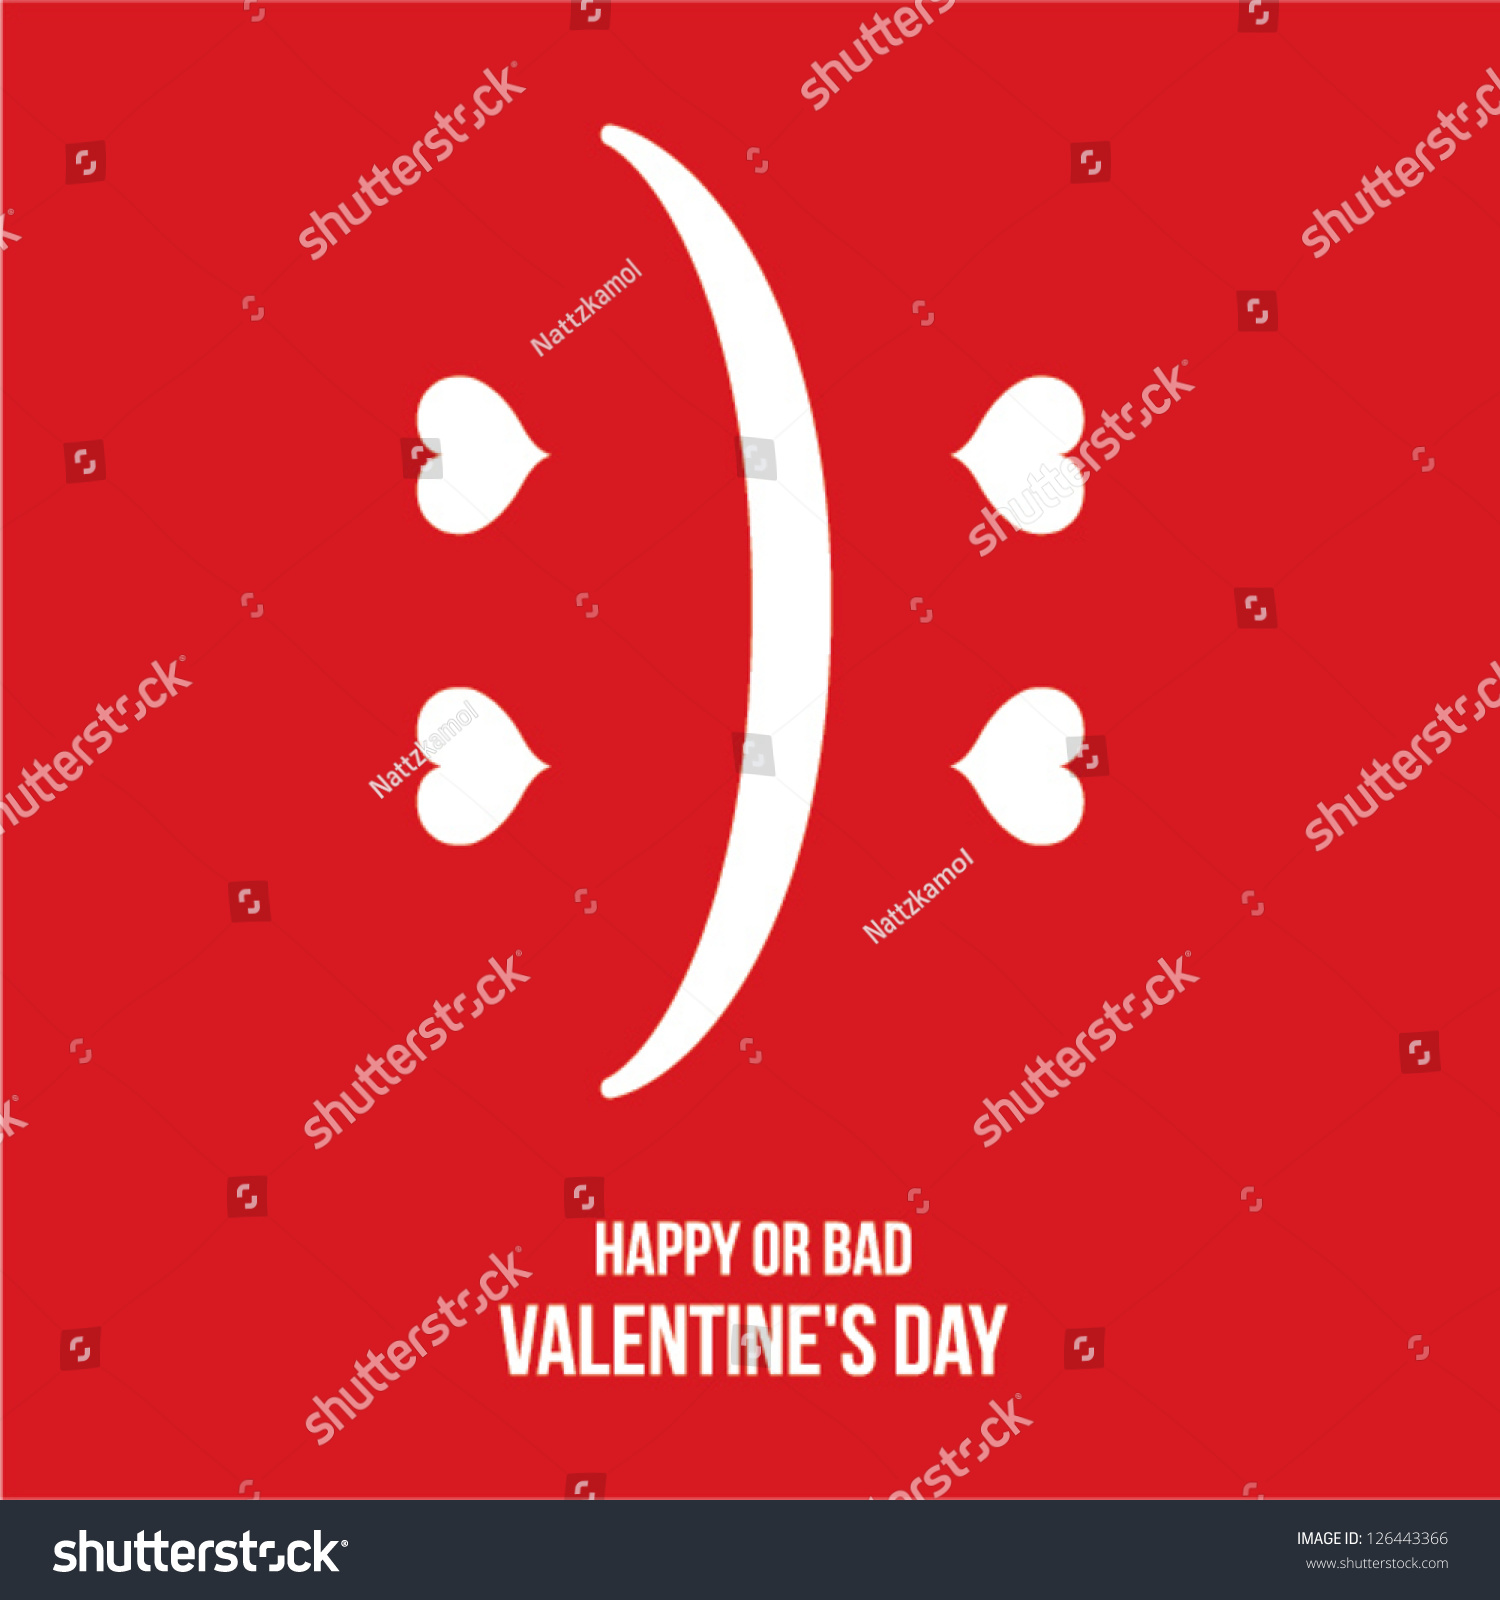 Happy Or Bad Valentineu0027s Day Cards, Poster, Background. (vector)